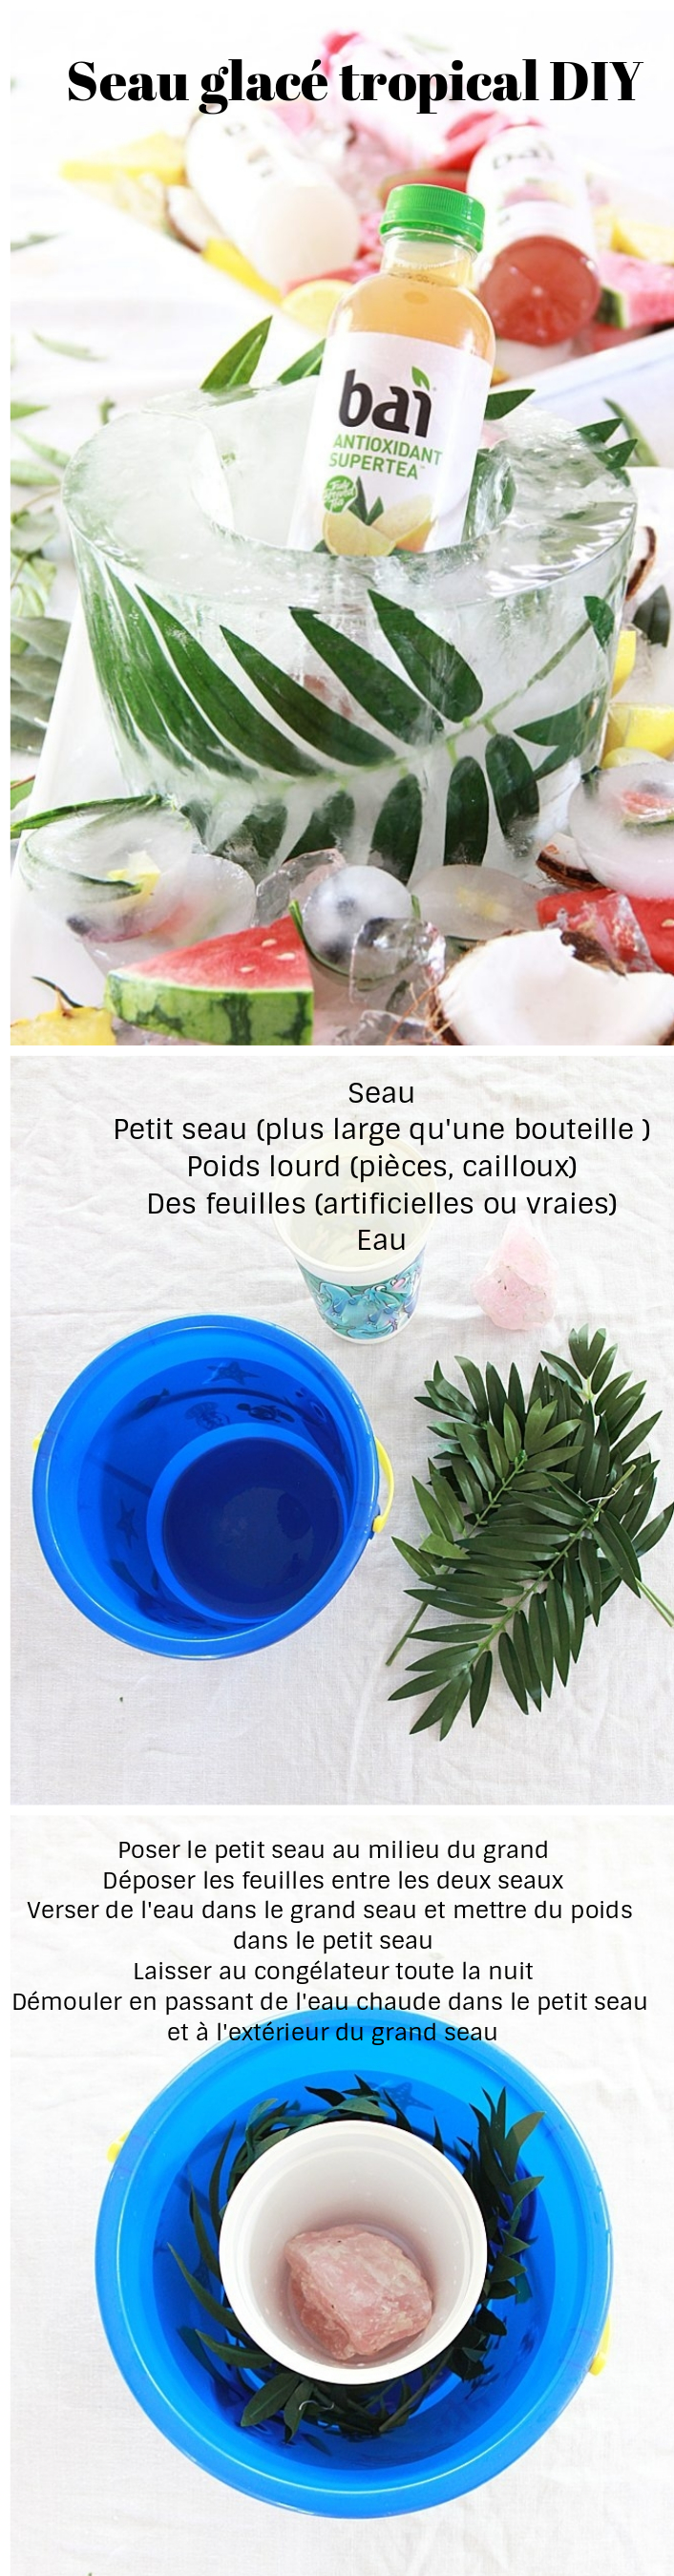 tendance tropicale diy seau champagne glace feuille deco mariage